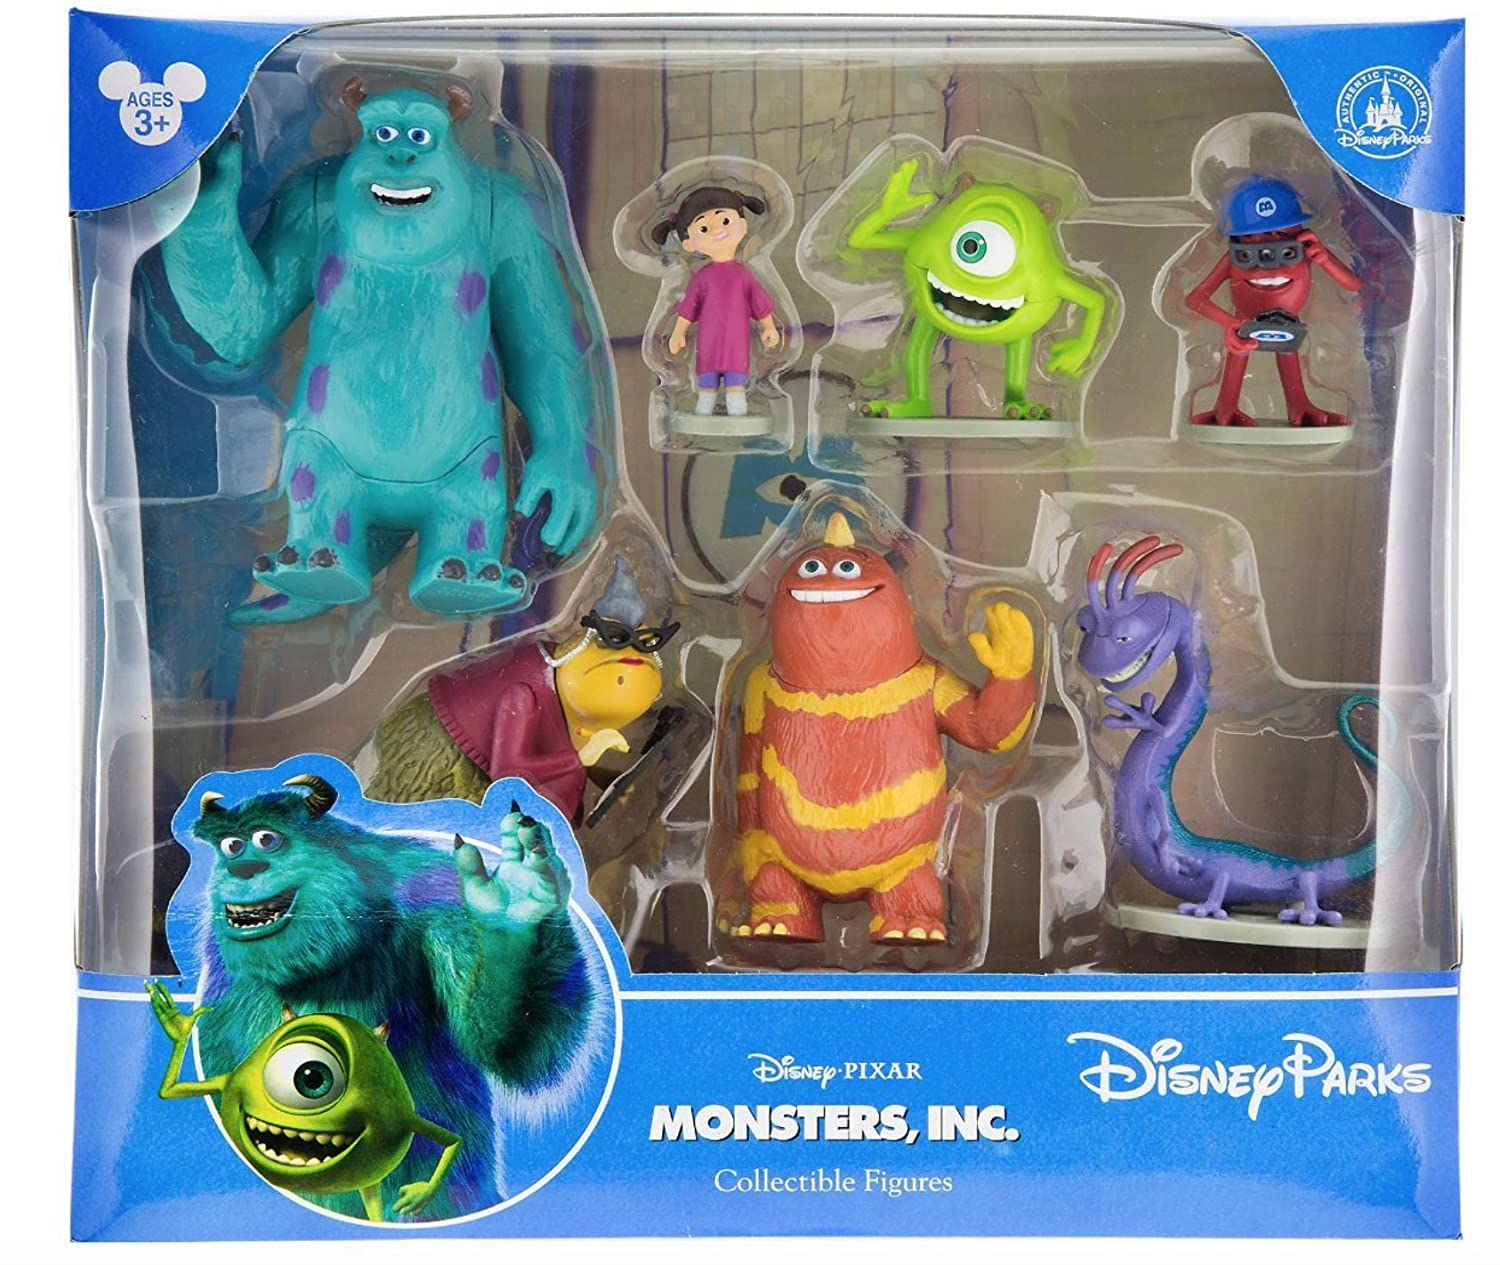 Disney Parks Monsters Inc  Collectible Figurine Playset Play Set Cake Topper